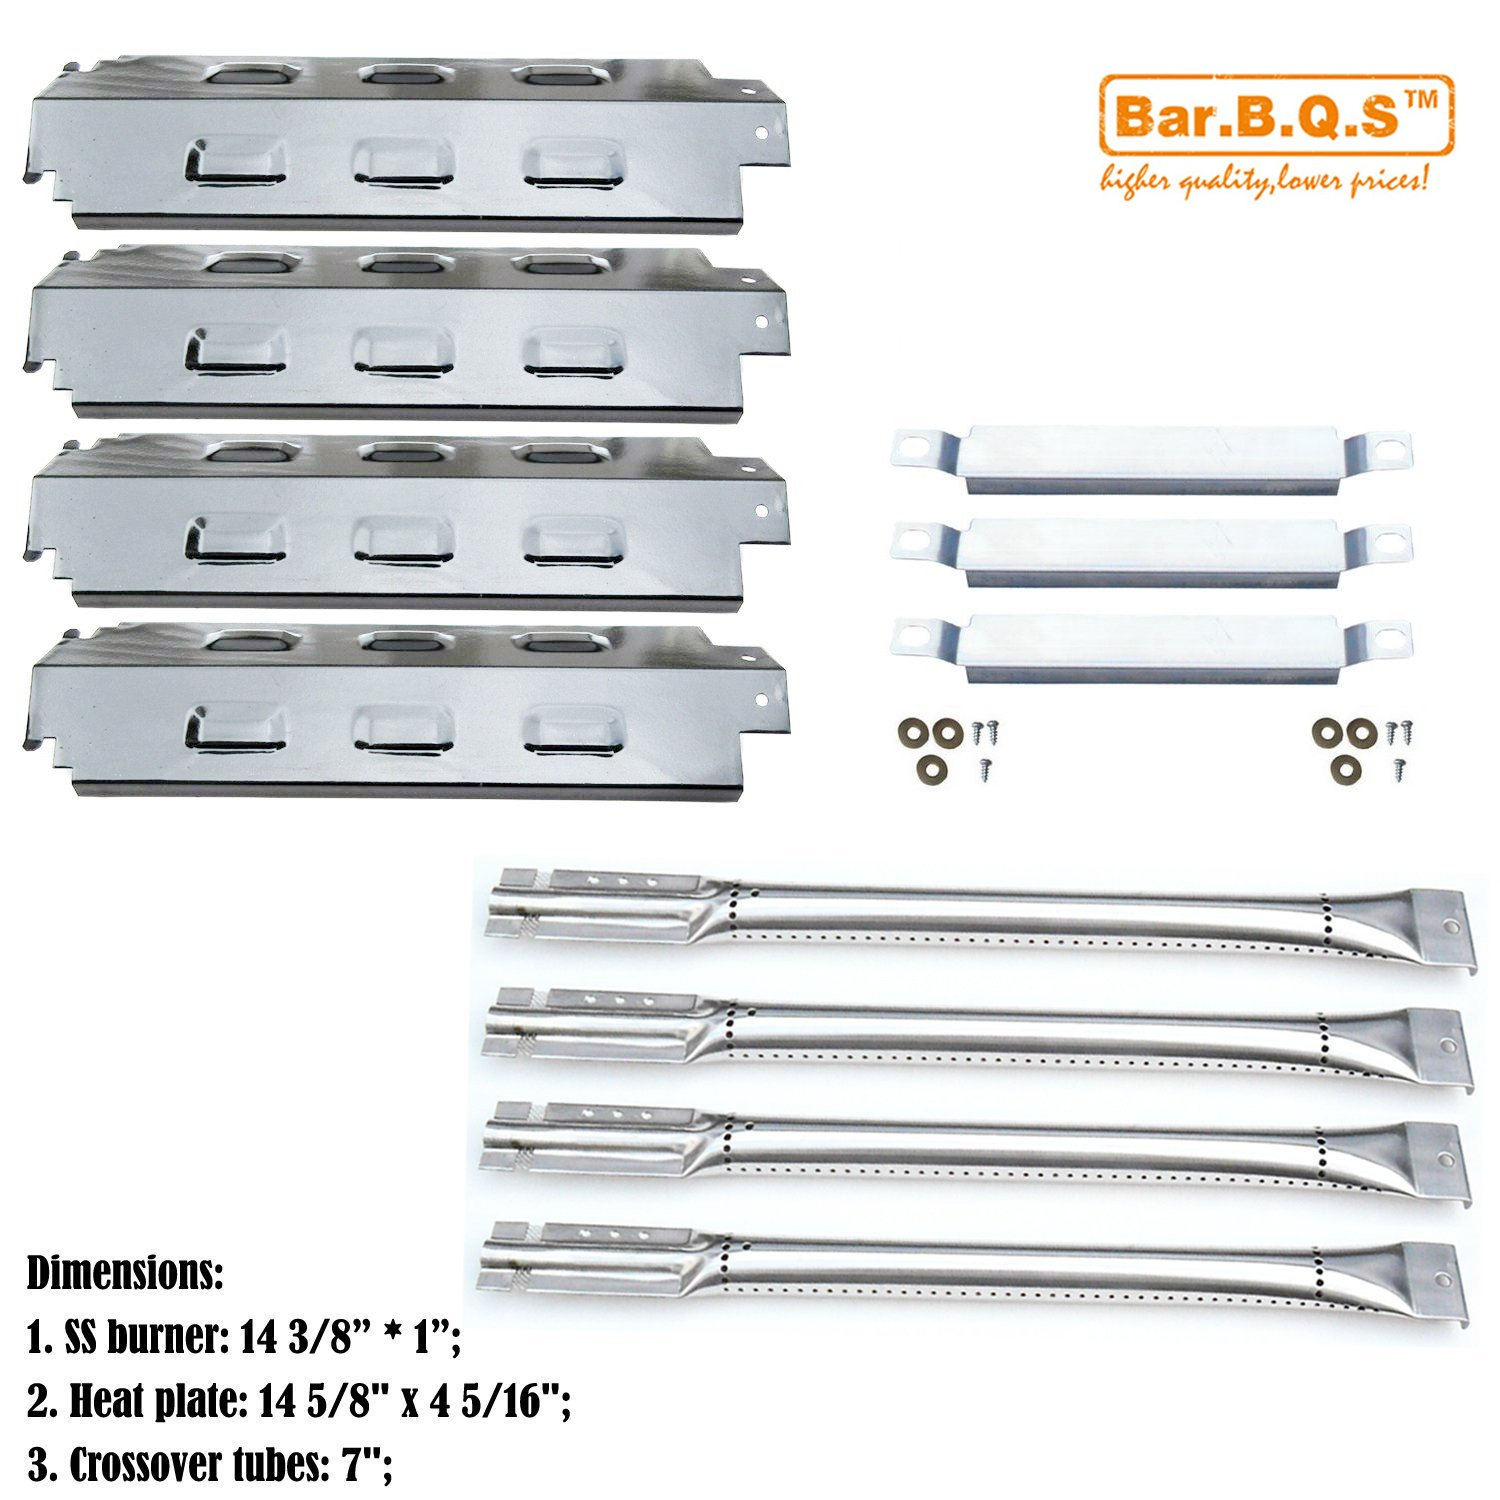 Bar.b.q.s Replacement Charbroil 463420507,463420509, 463460708, 463460710 Gas Grill Stainless Steel Burners, Carryover Tubes, Stainless Steel Heat Plates (Repair Kit)